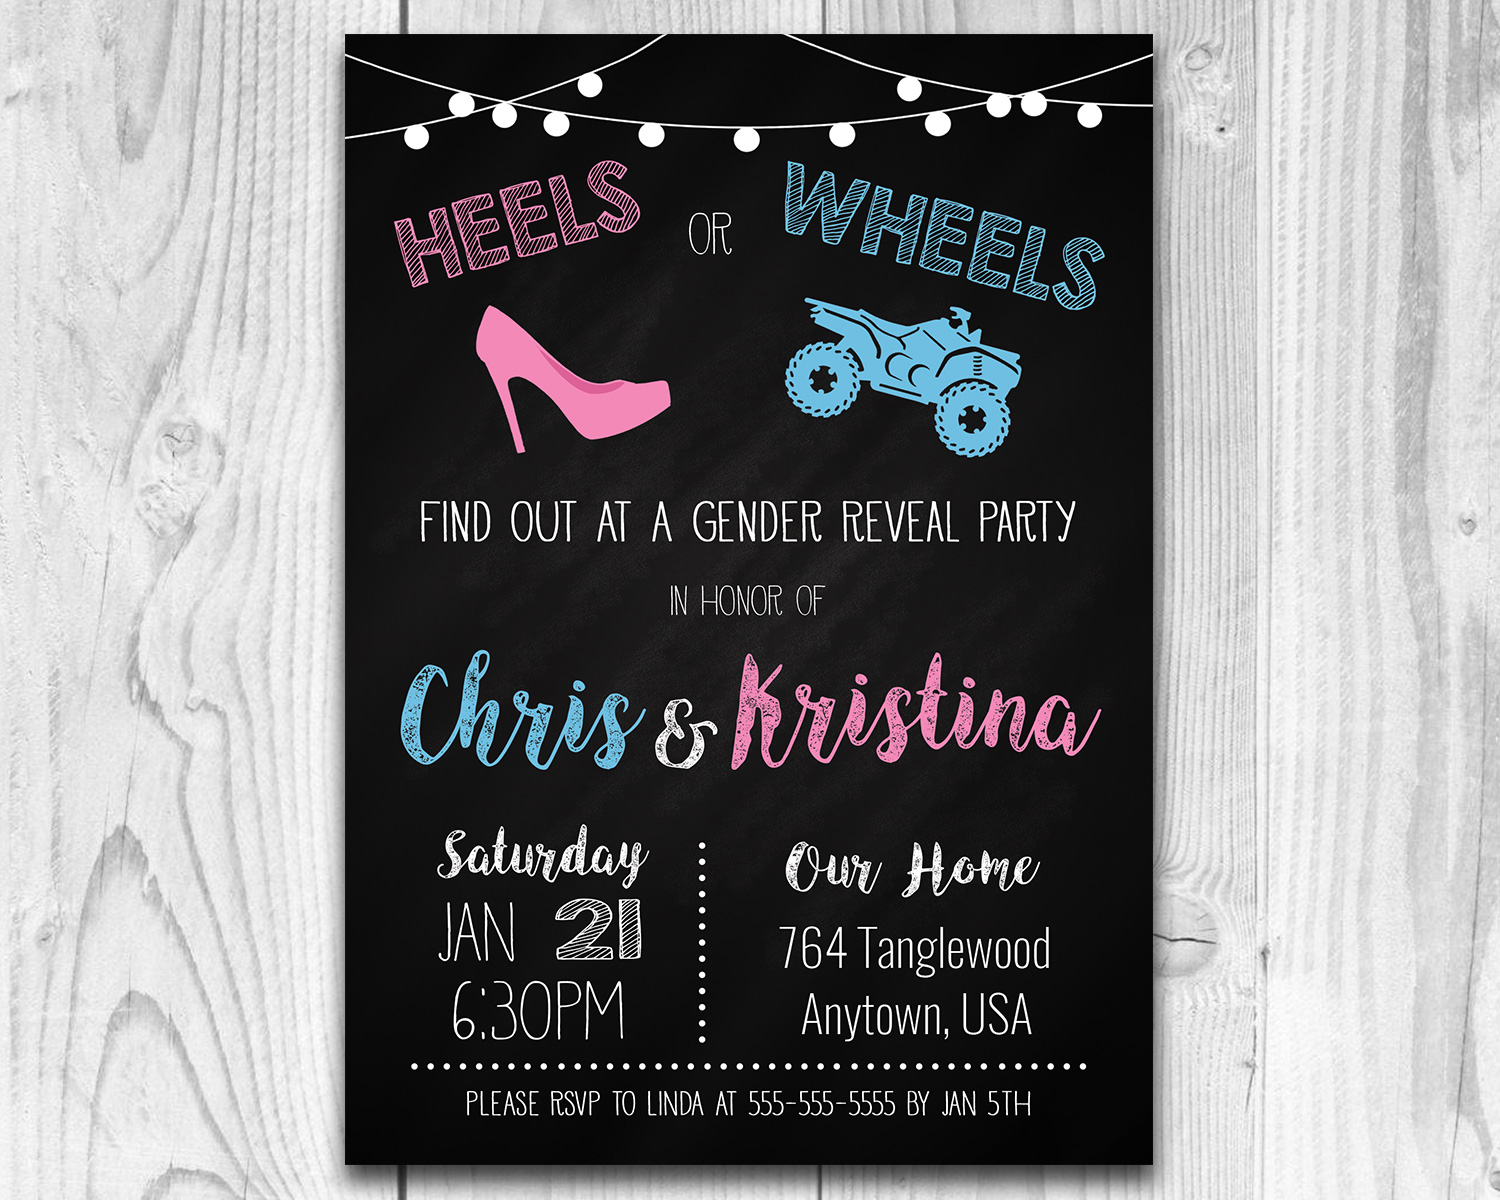 photograph about Printable Gender Reveal Invitations identified as Heels or Wheels Printable Gender Describe Invitation (ATV)